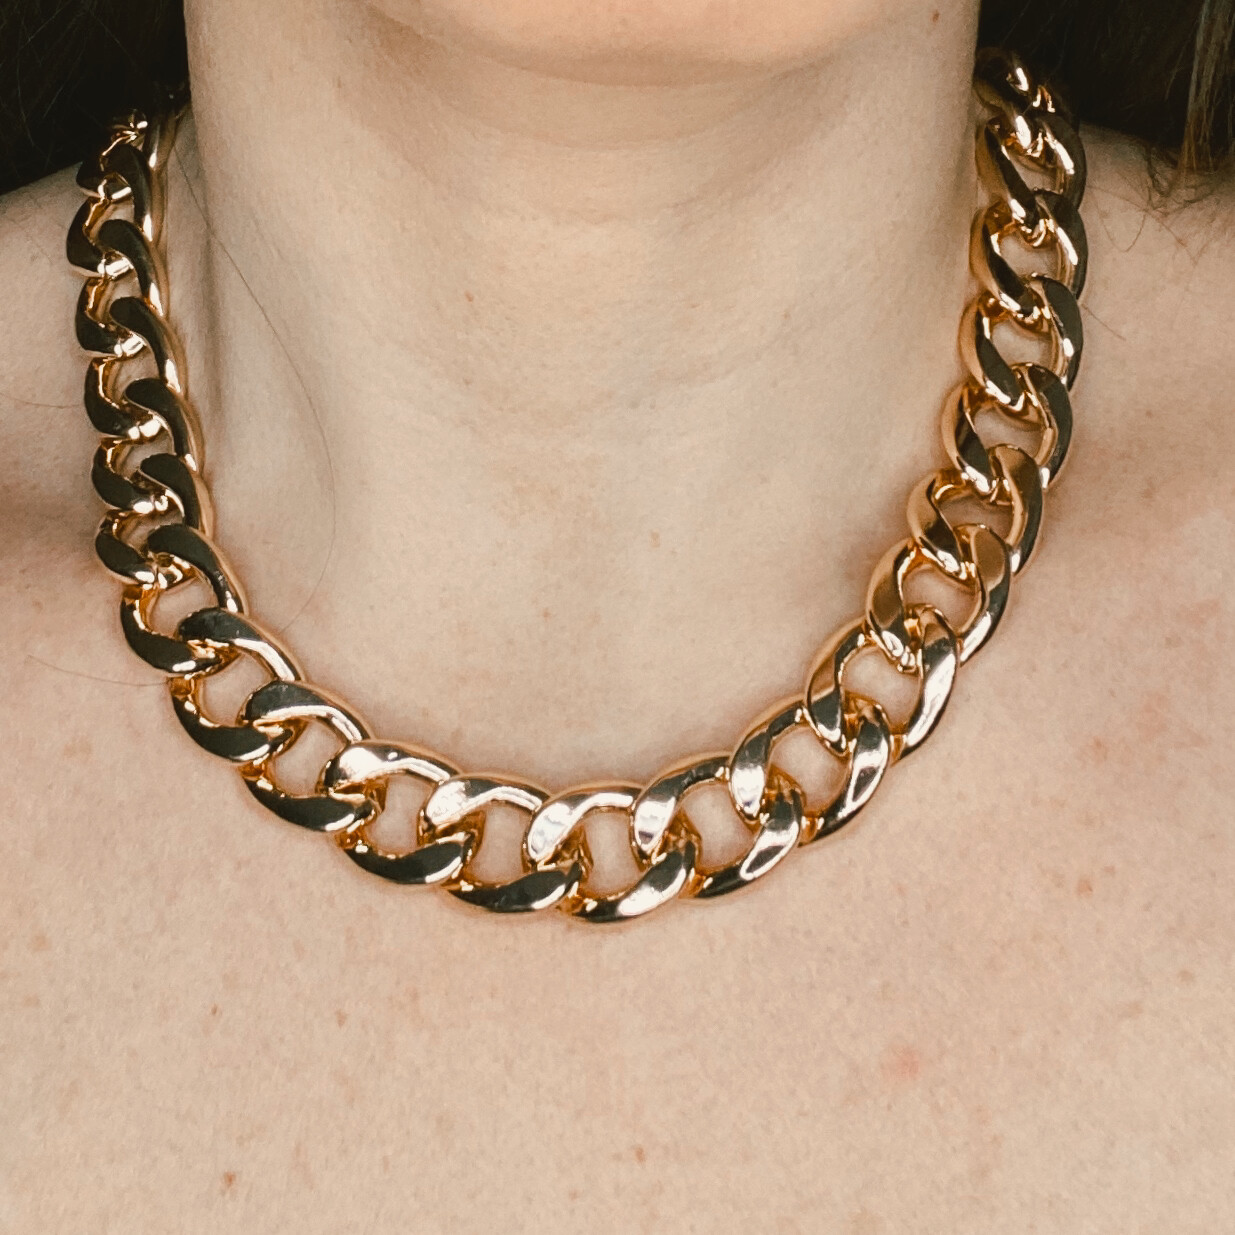 Bulky Chain Necklace